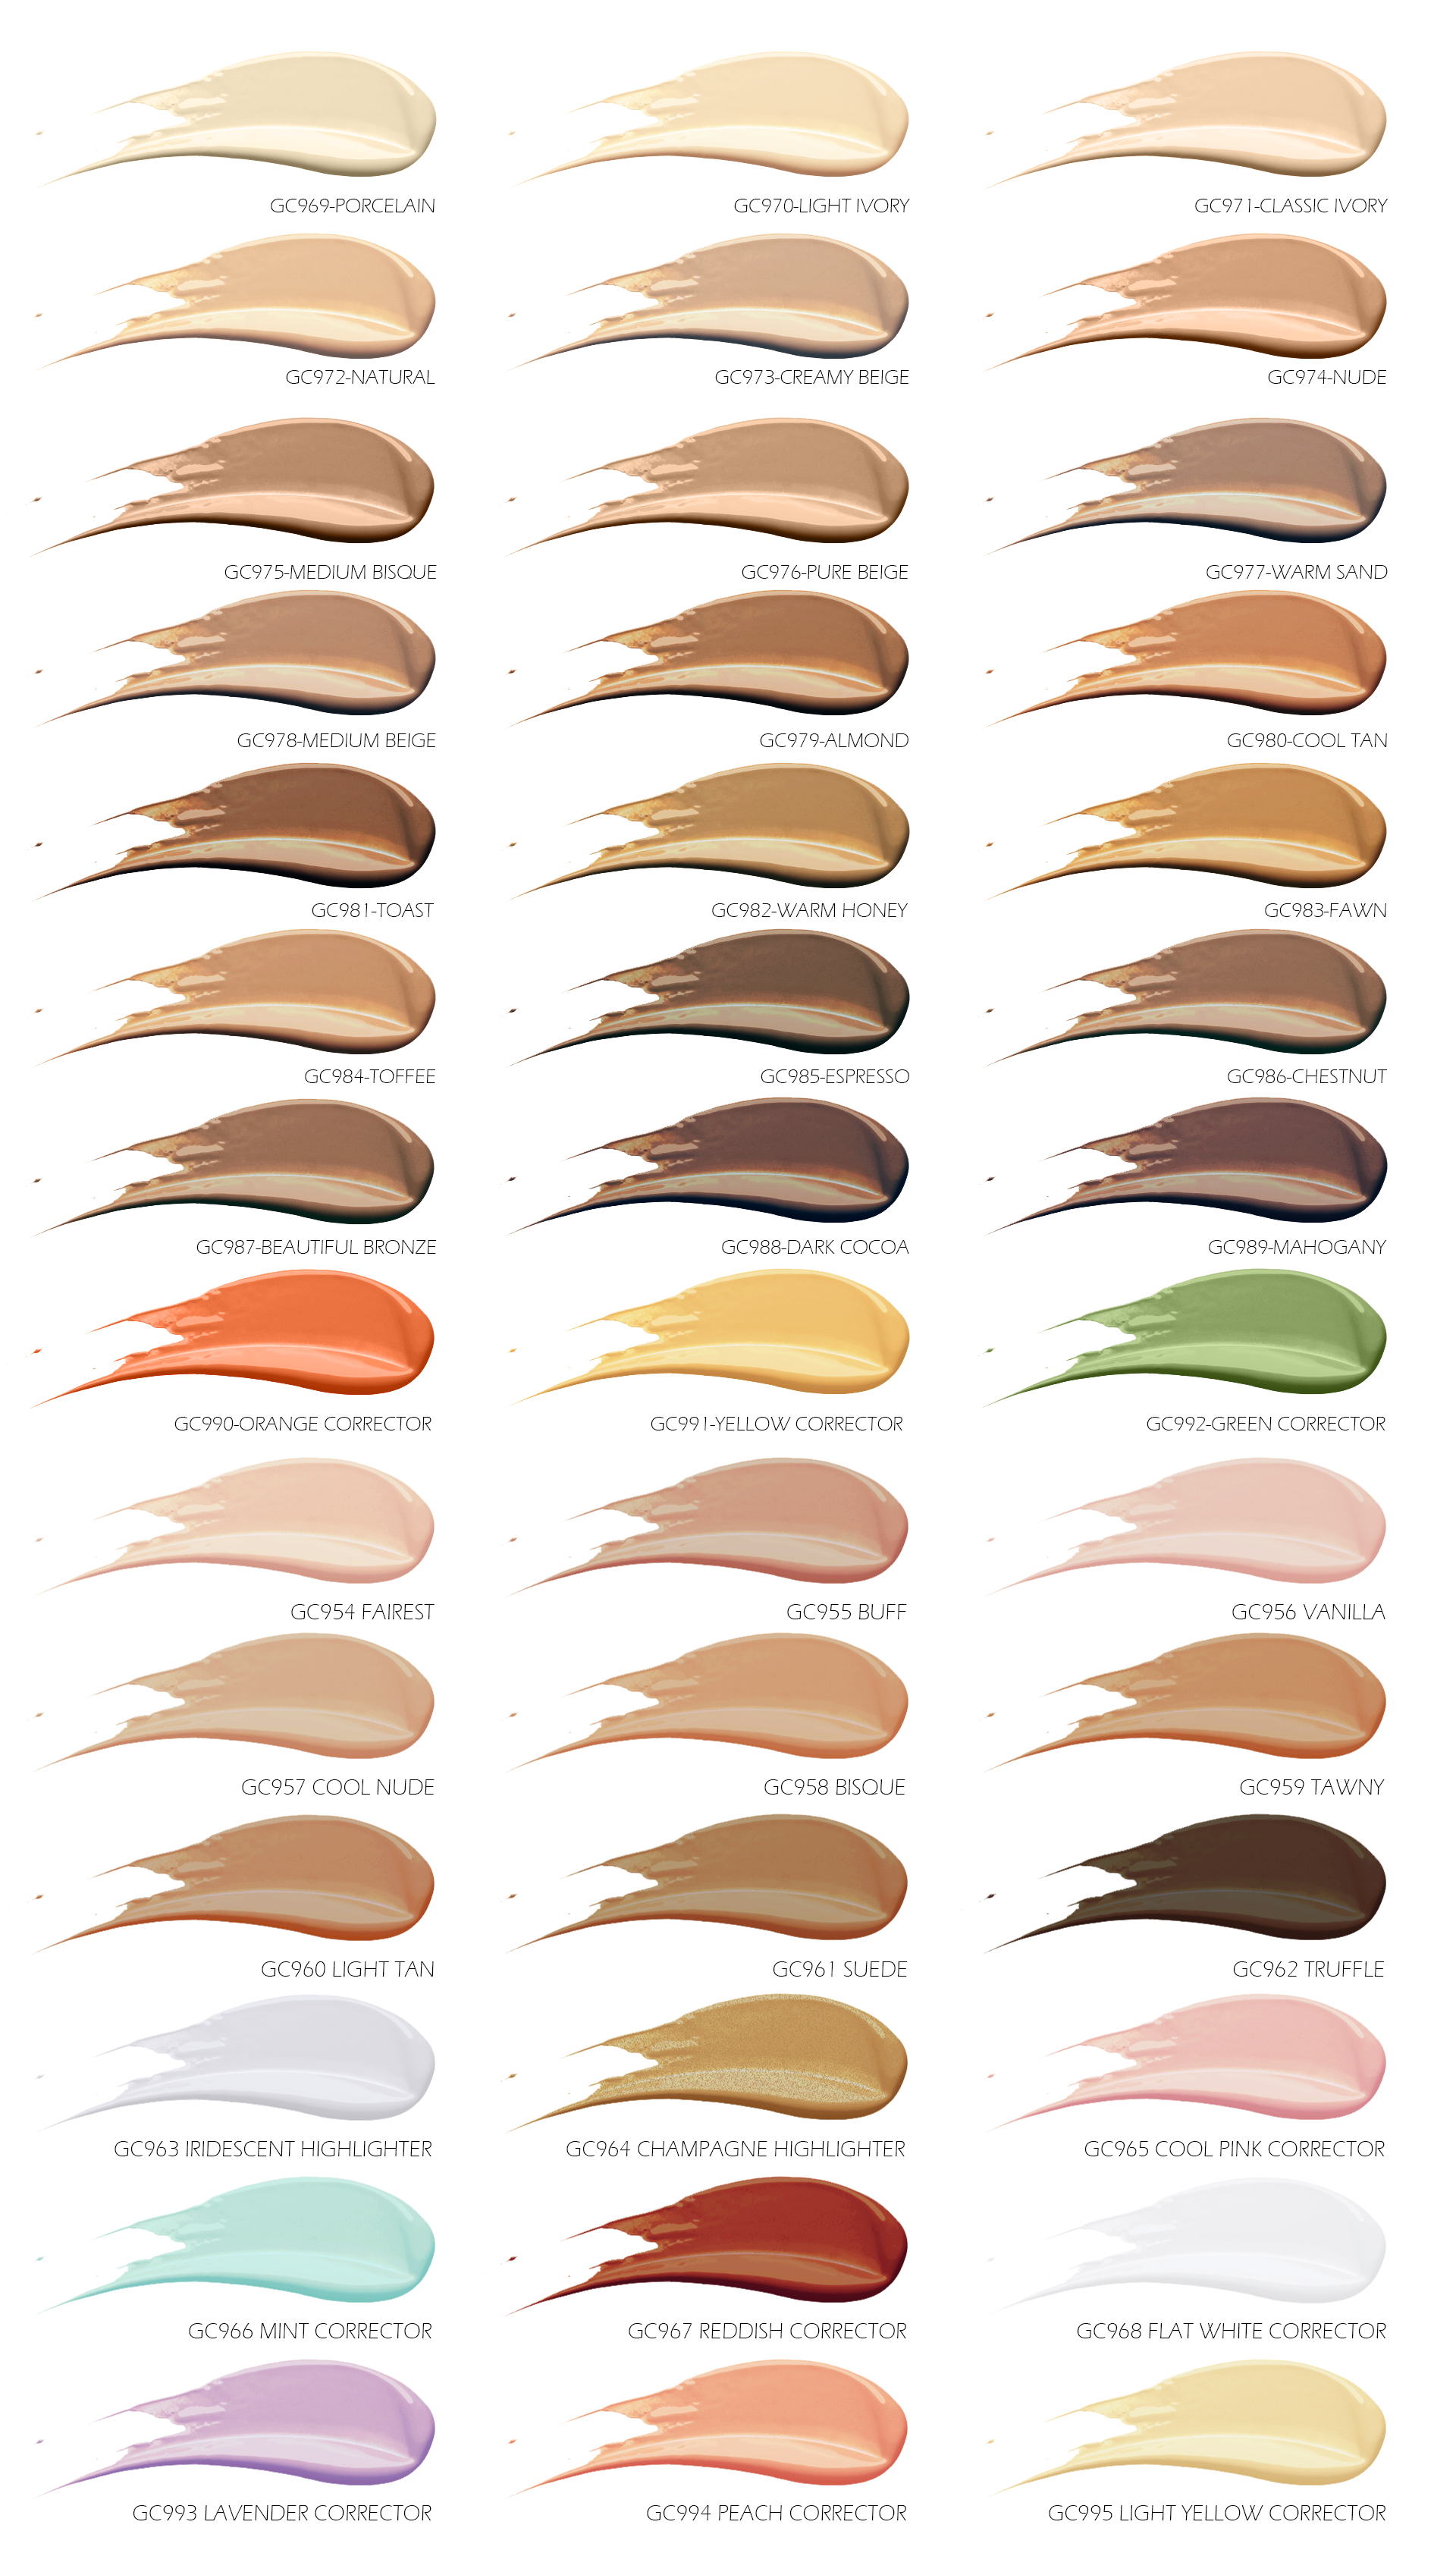 la-girl-concealer-chart-plus-new-shades-1-.png